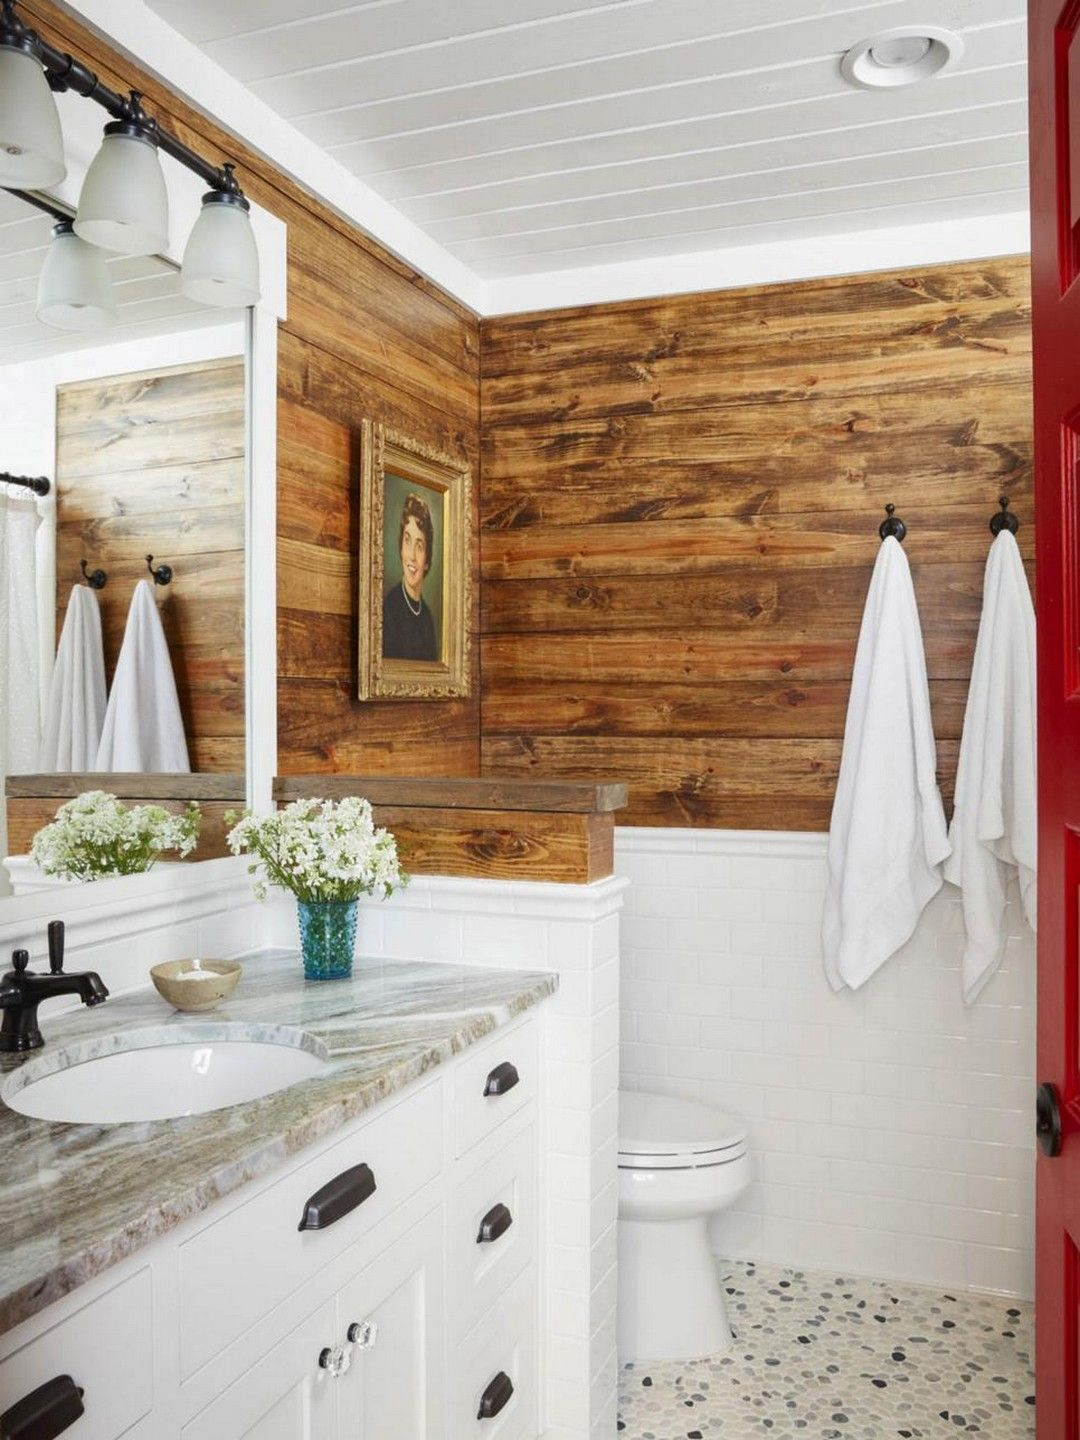 awesome 99 rustic lake house decorating ideas http://www